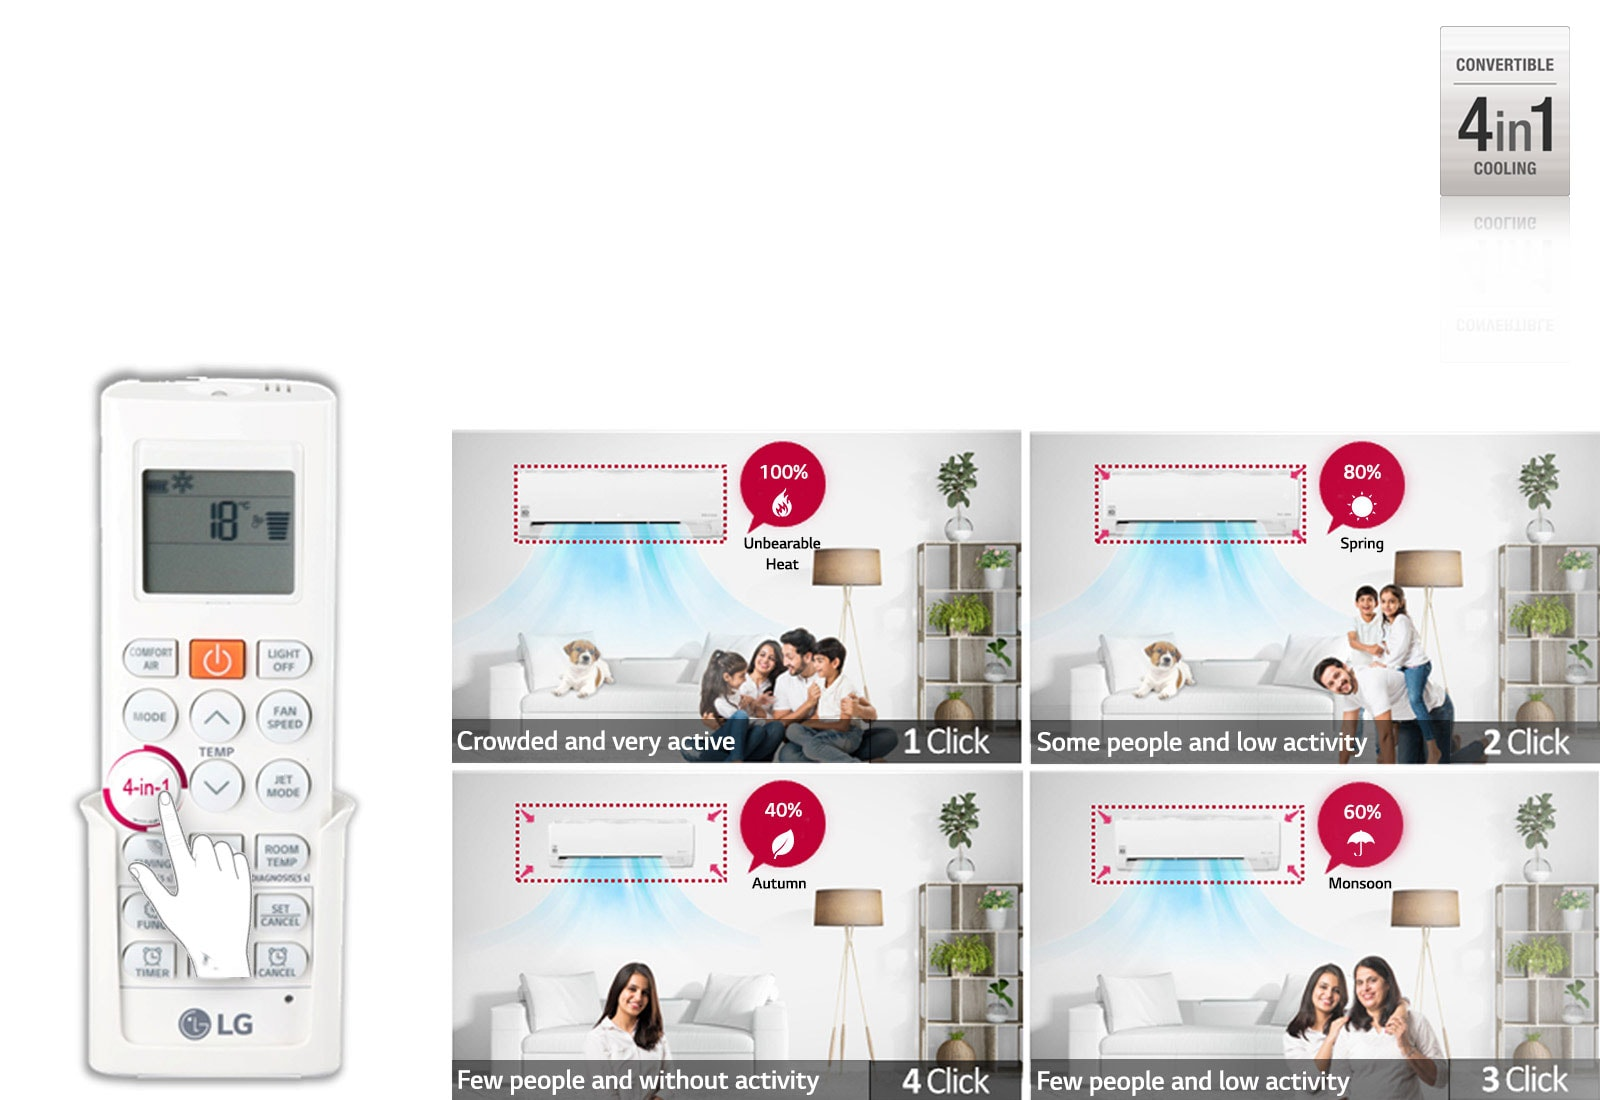 LG MS-Q18JNZA 4-in-1 Convertible Cooling